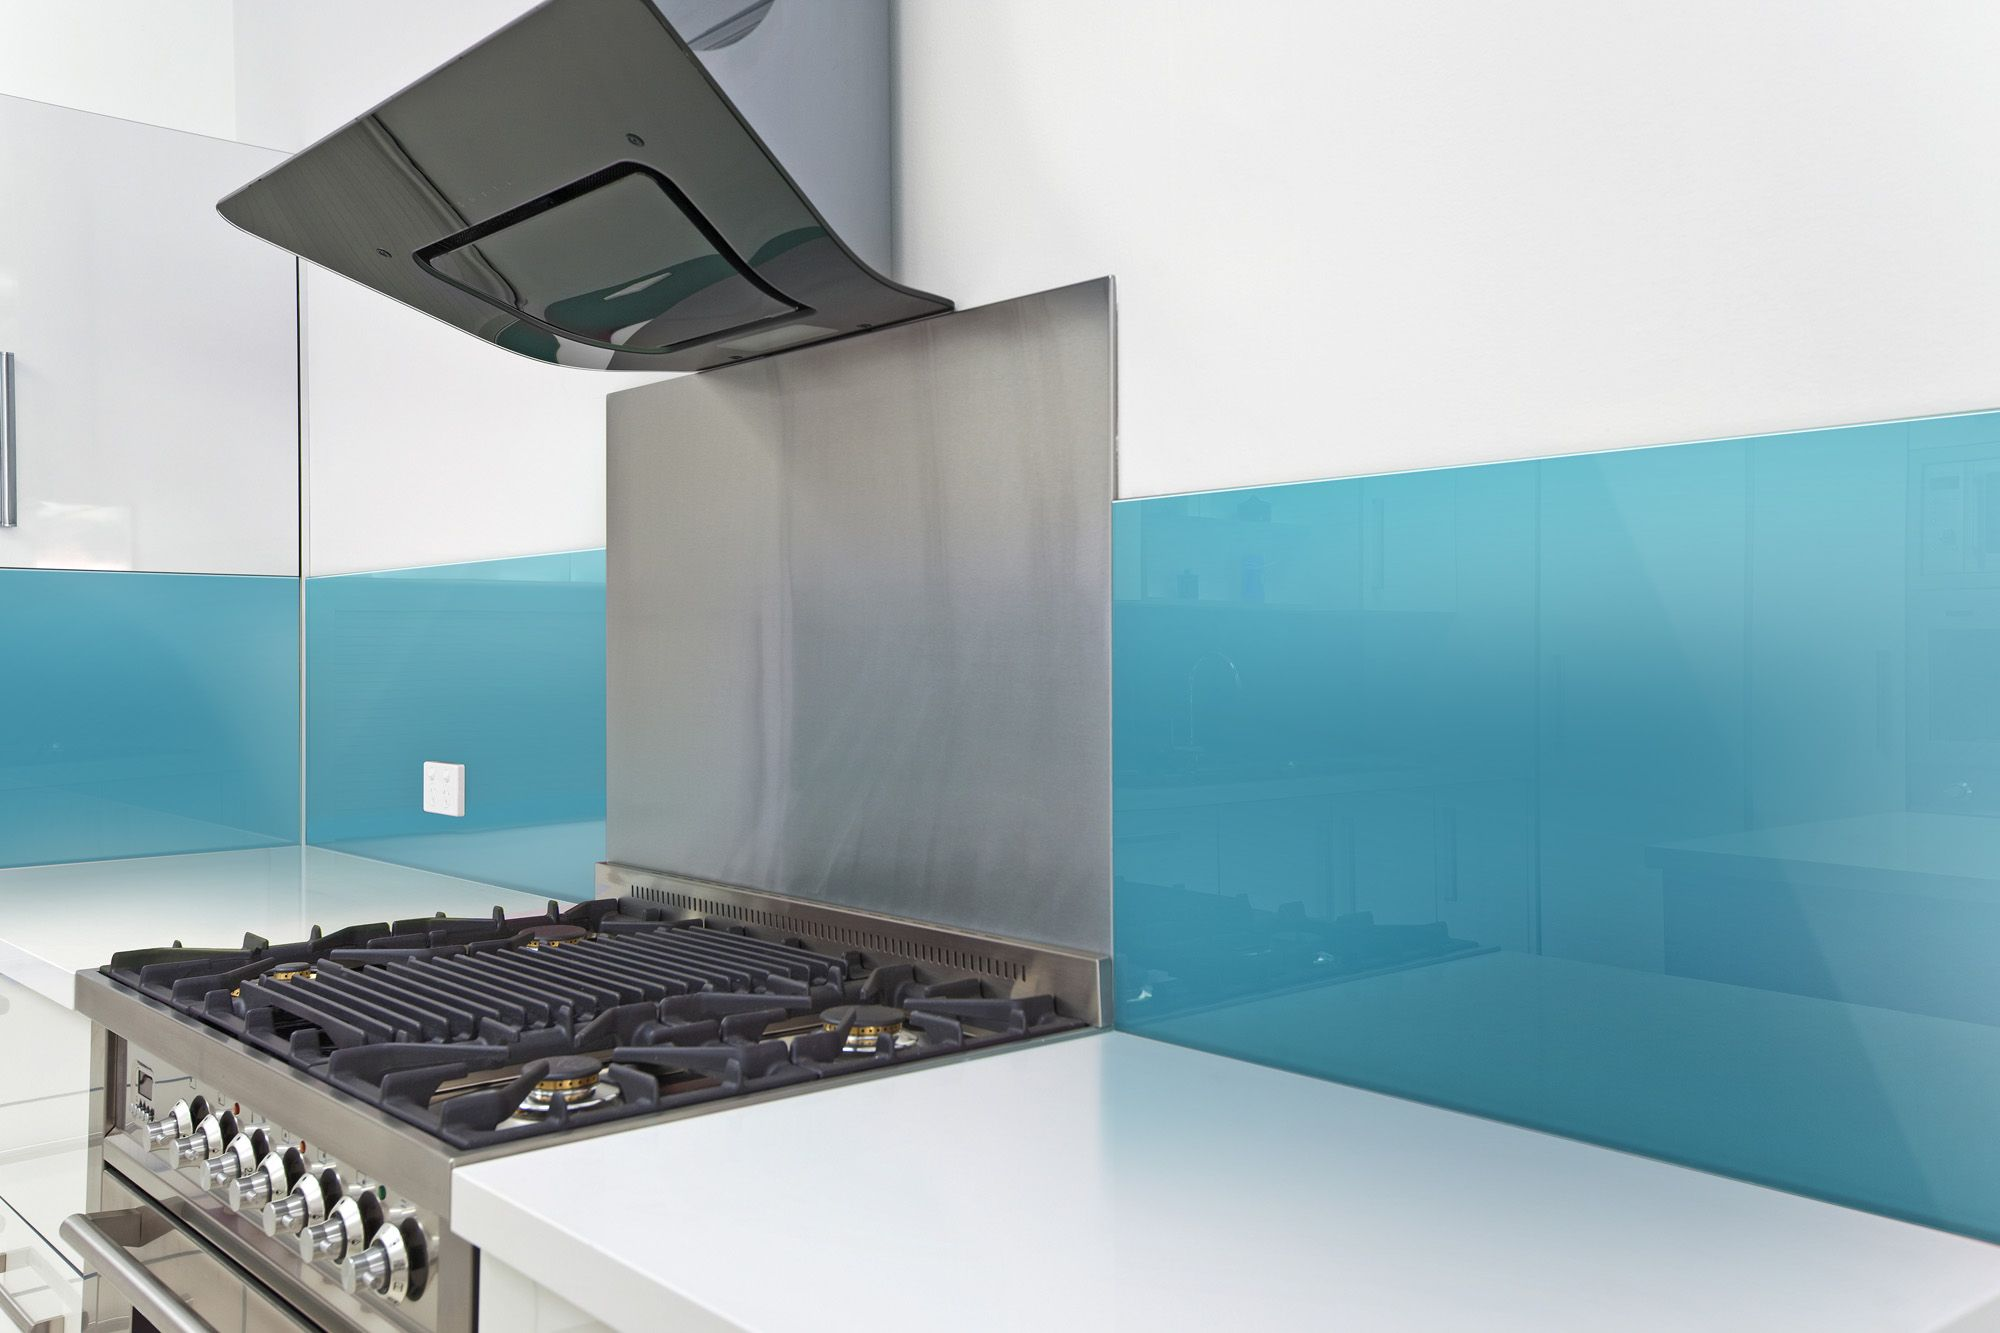 fun kitchen backsplash combining stainless steel behind the cooktop and high gloss wall panels around the